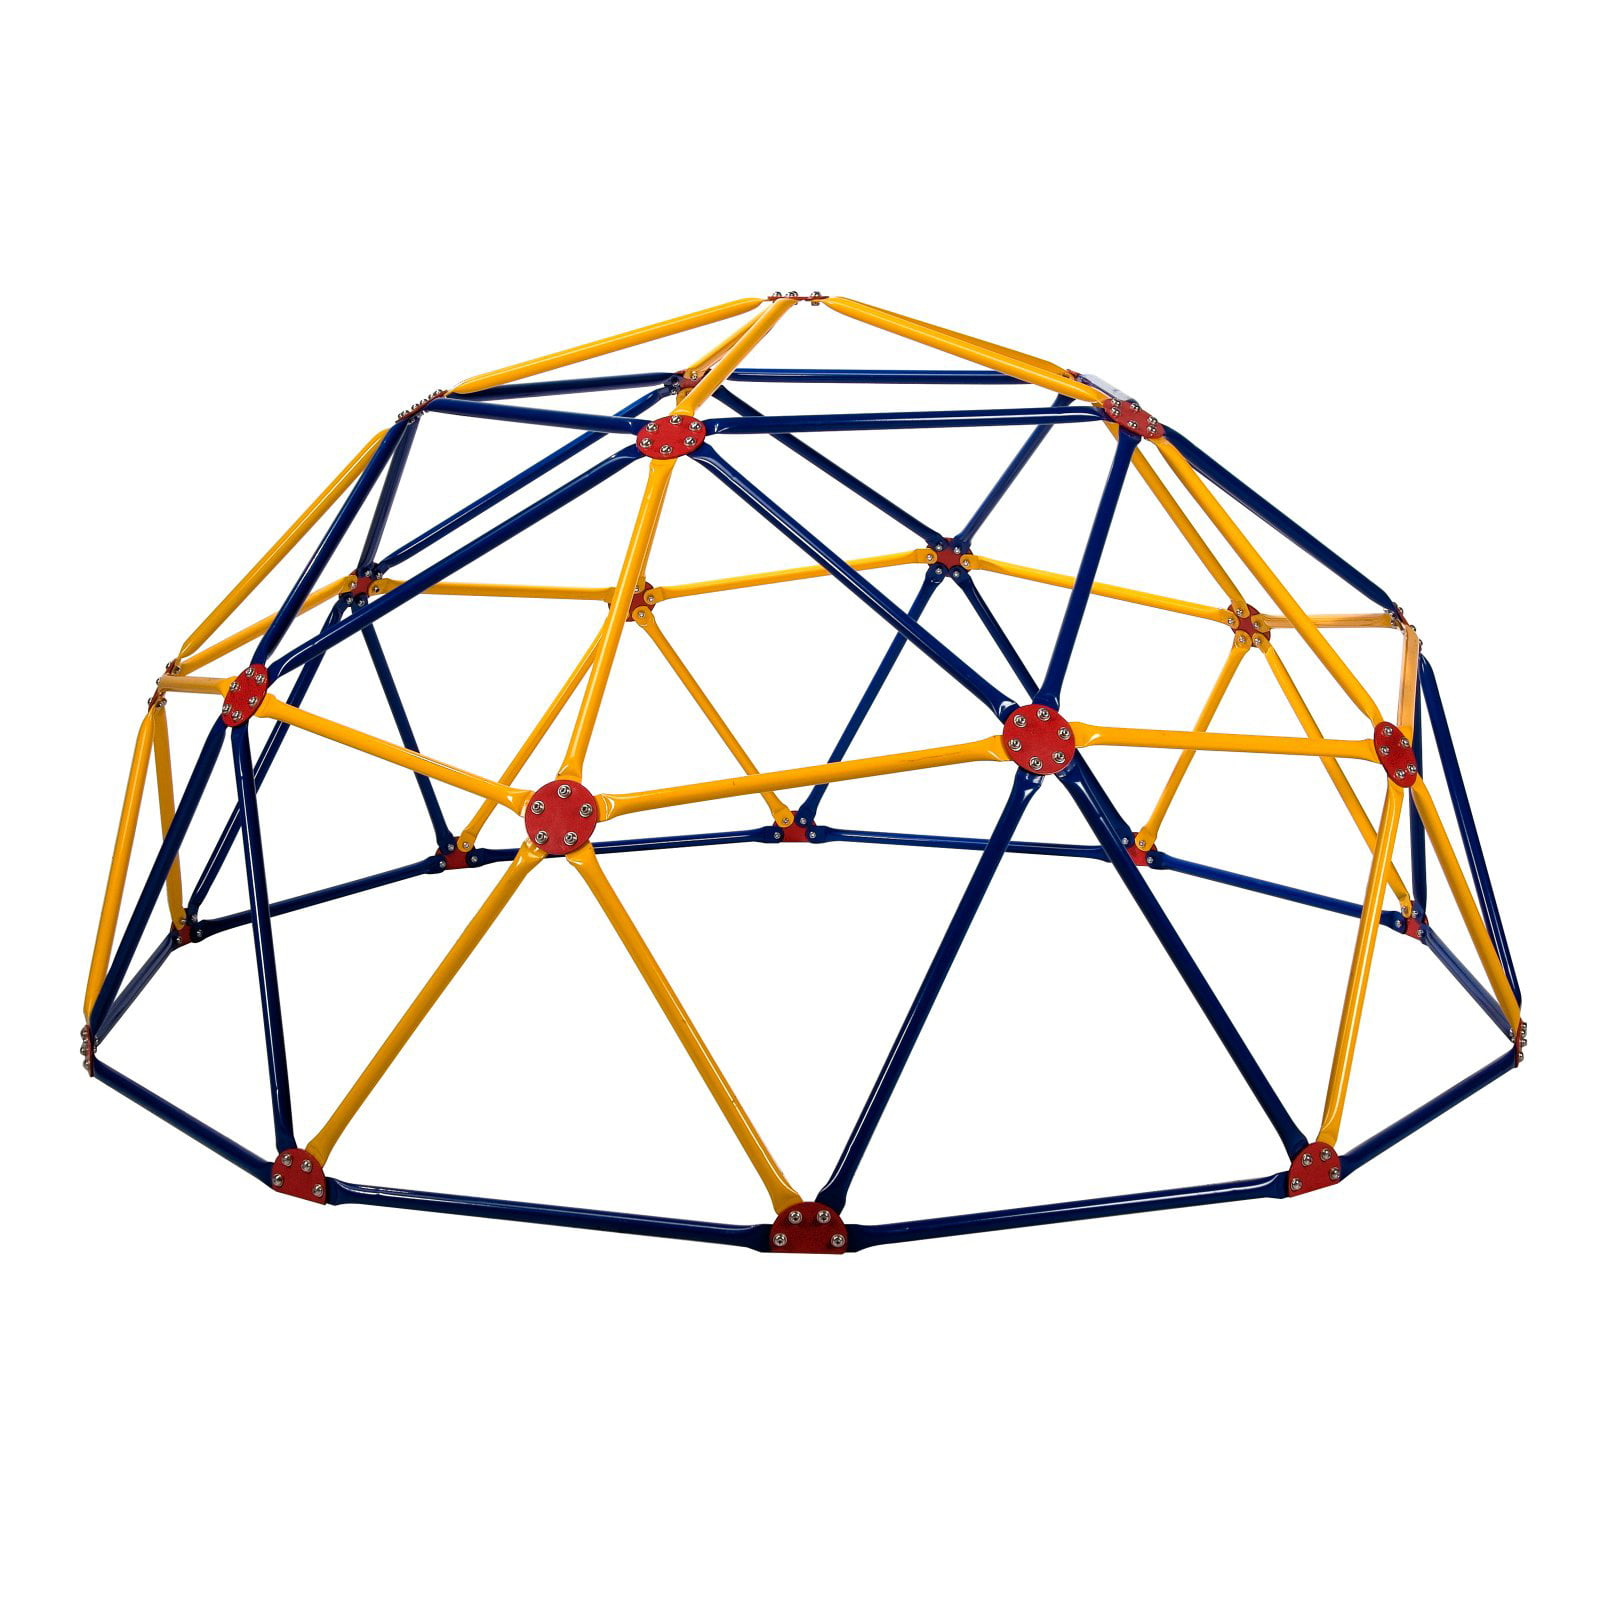 Impex Easy Outdoor Space Dome Climber by Impex Inc